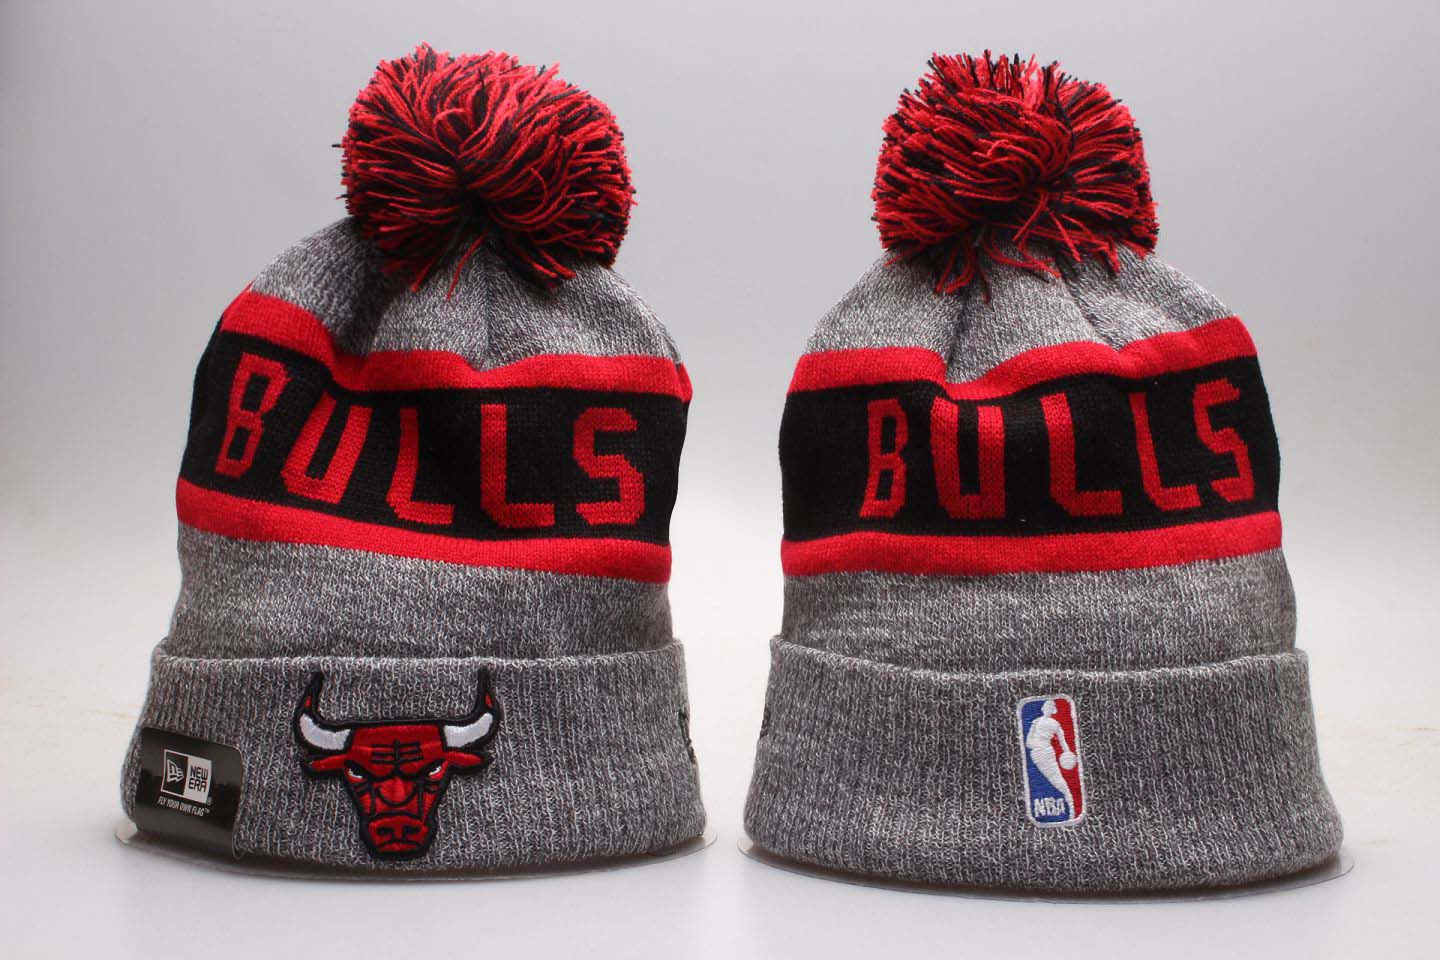 NBA Chicago Bulls Beanie hot hat